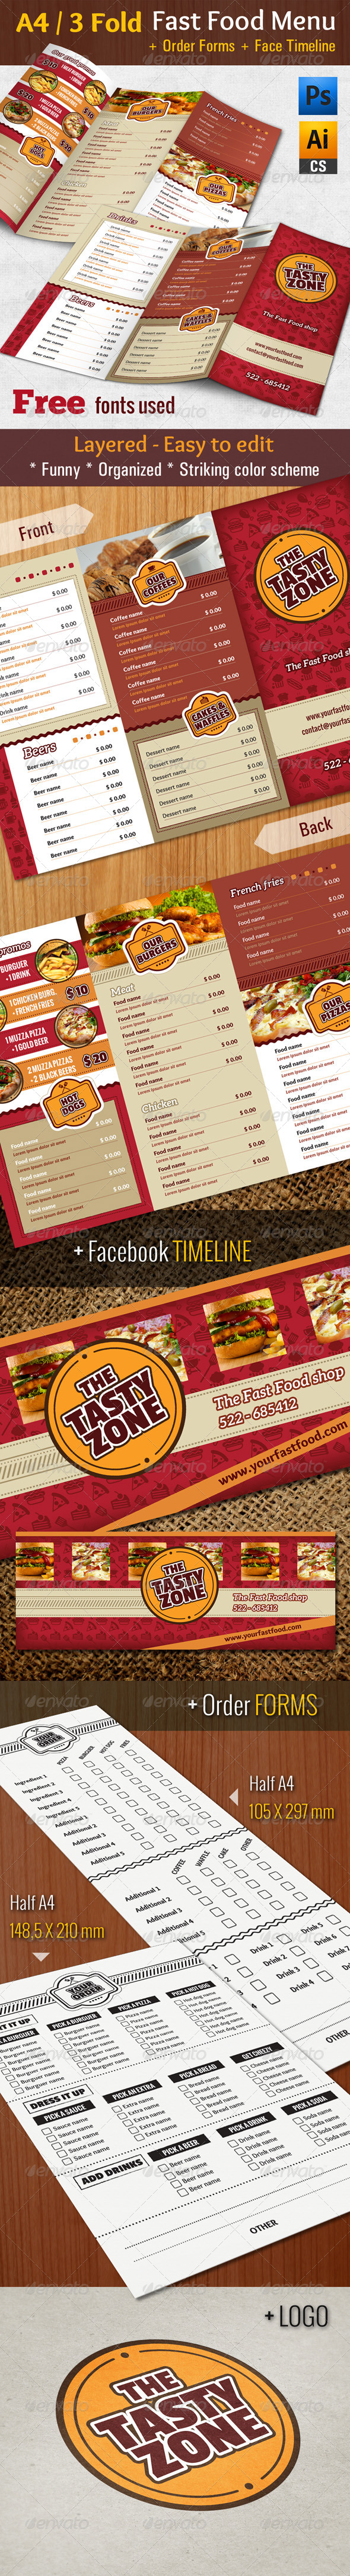 GraphicRiver 3 Fold Fast Food Menu & Timeline & Order Forms 8676211